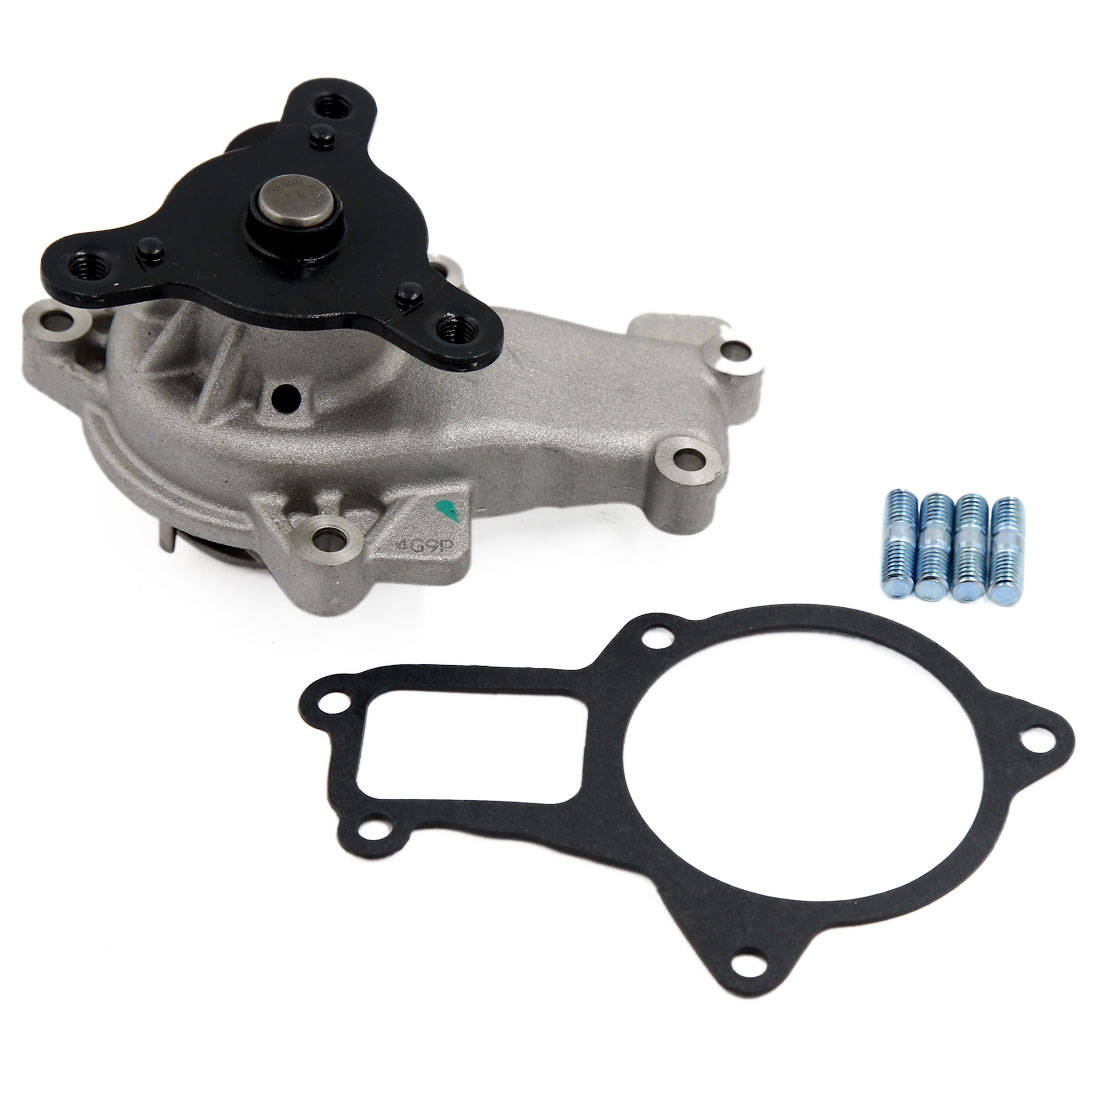 New Replacement Water Pump Part For Chrysler Pacifica V6-3.8L